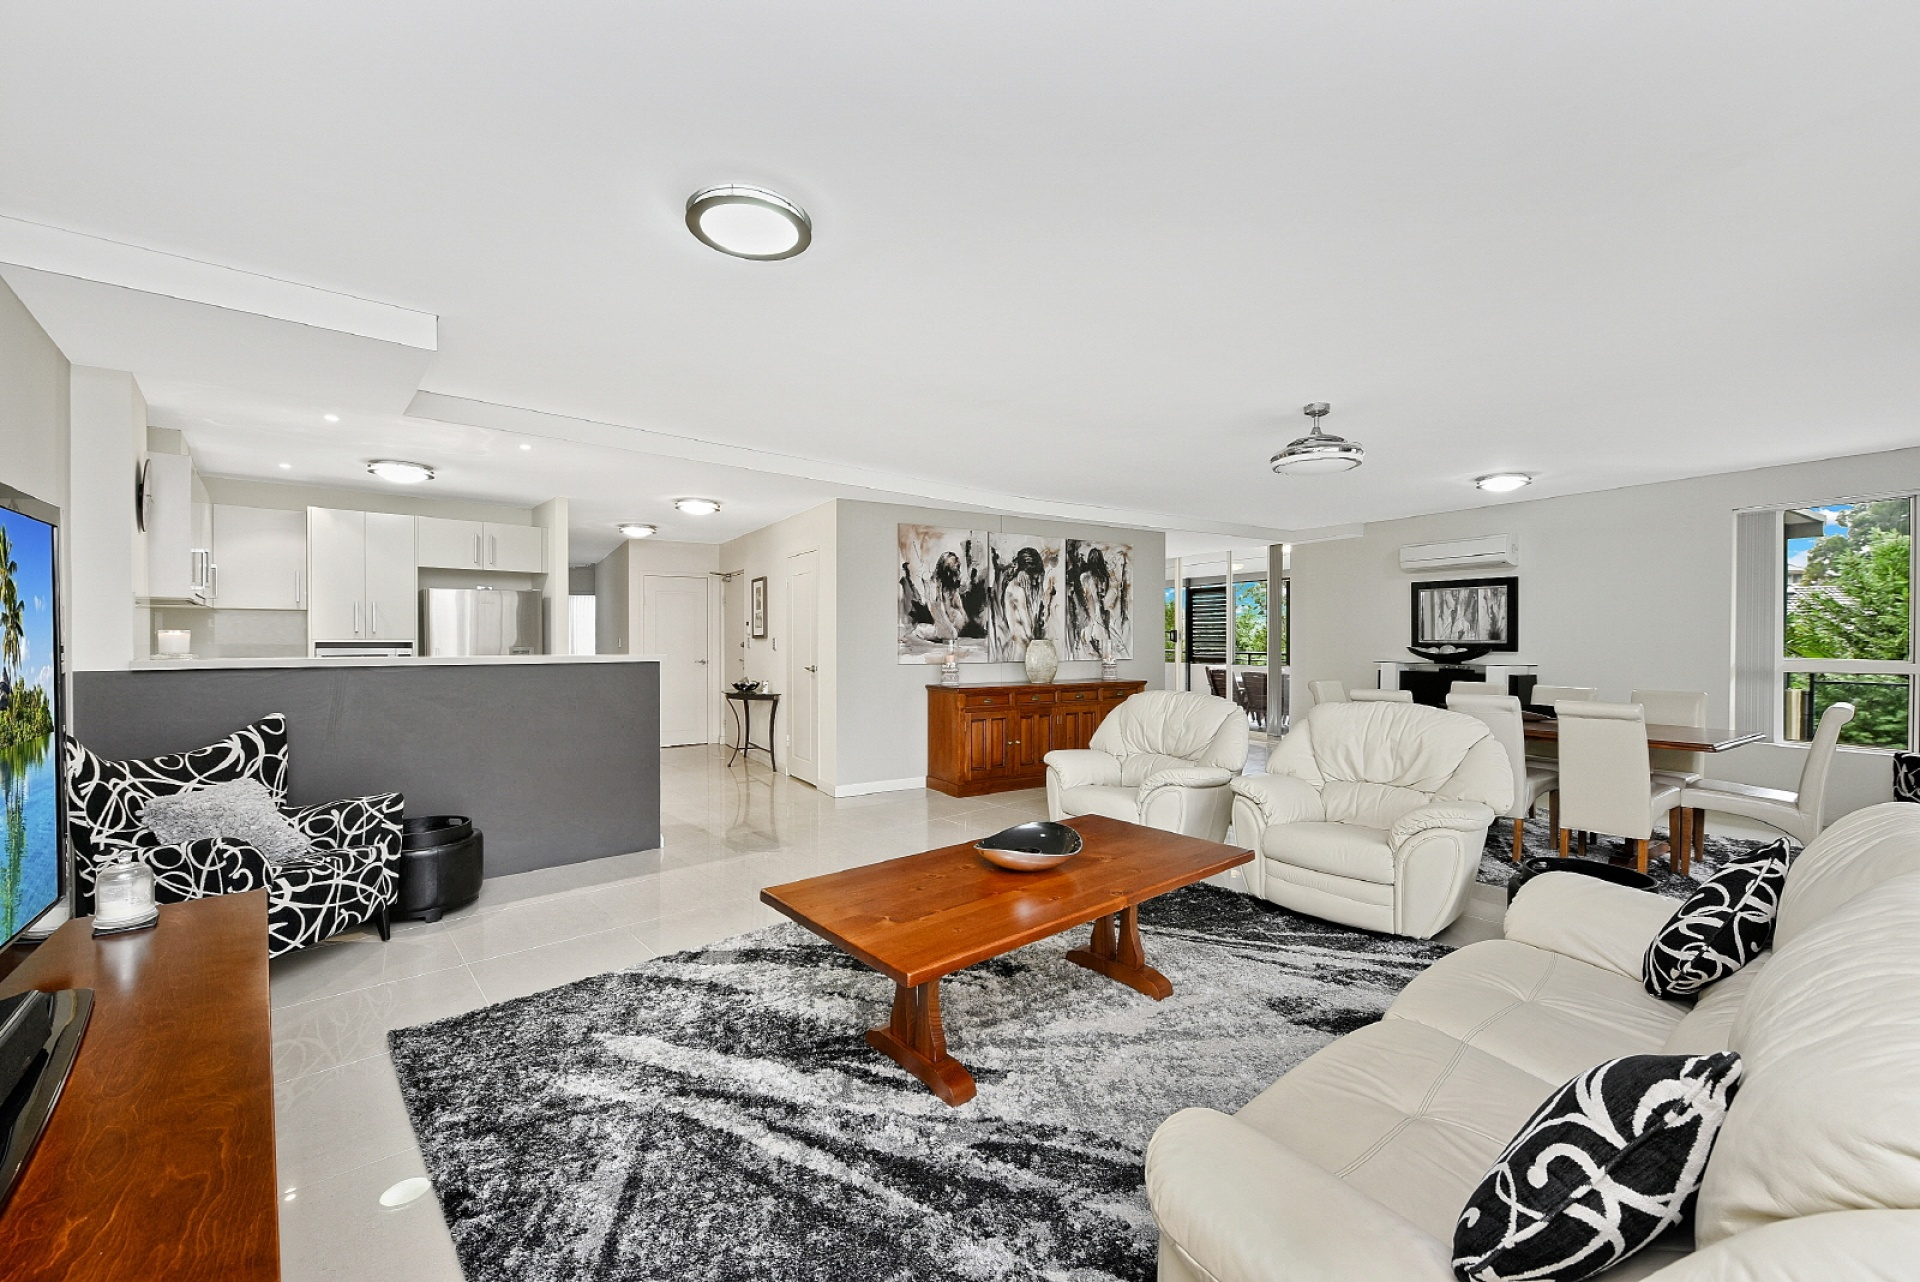 3 Bedrooms, Apartment, Sold , Mercer Street, 2 Bathrooms, Listing ID 1138, Castle Hill, NSW, Australia,